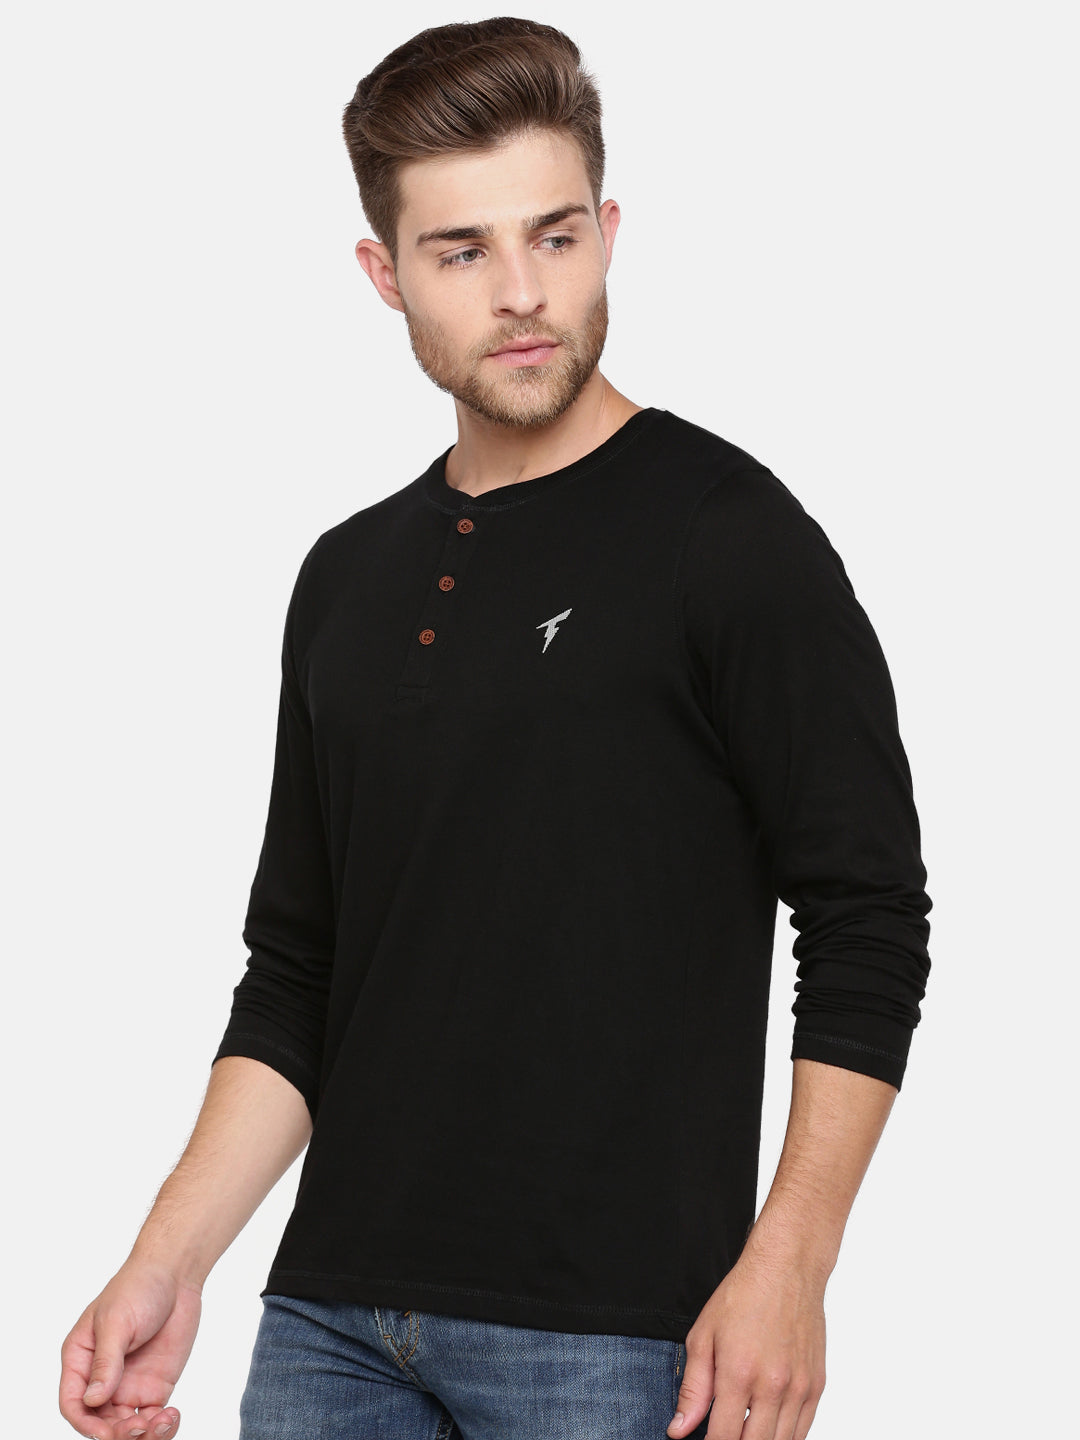 The Long Sleeve Black Henley